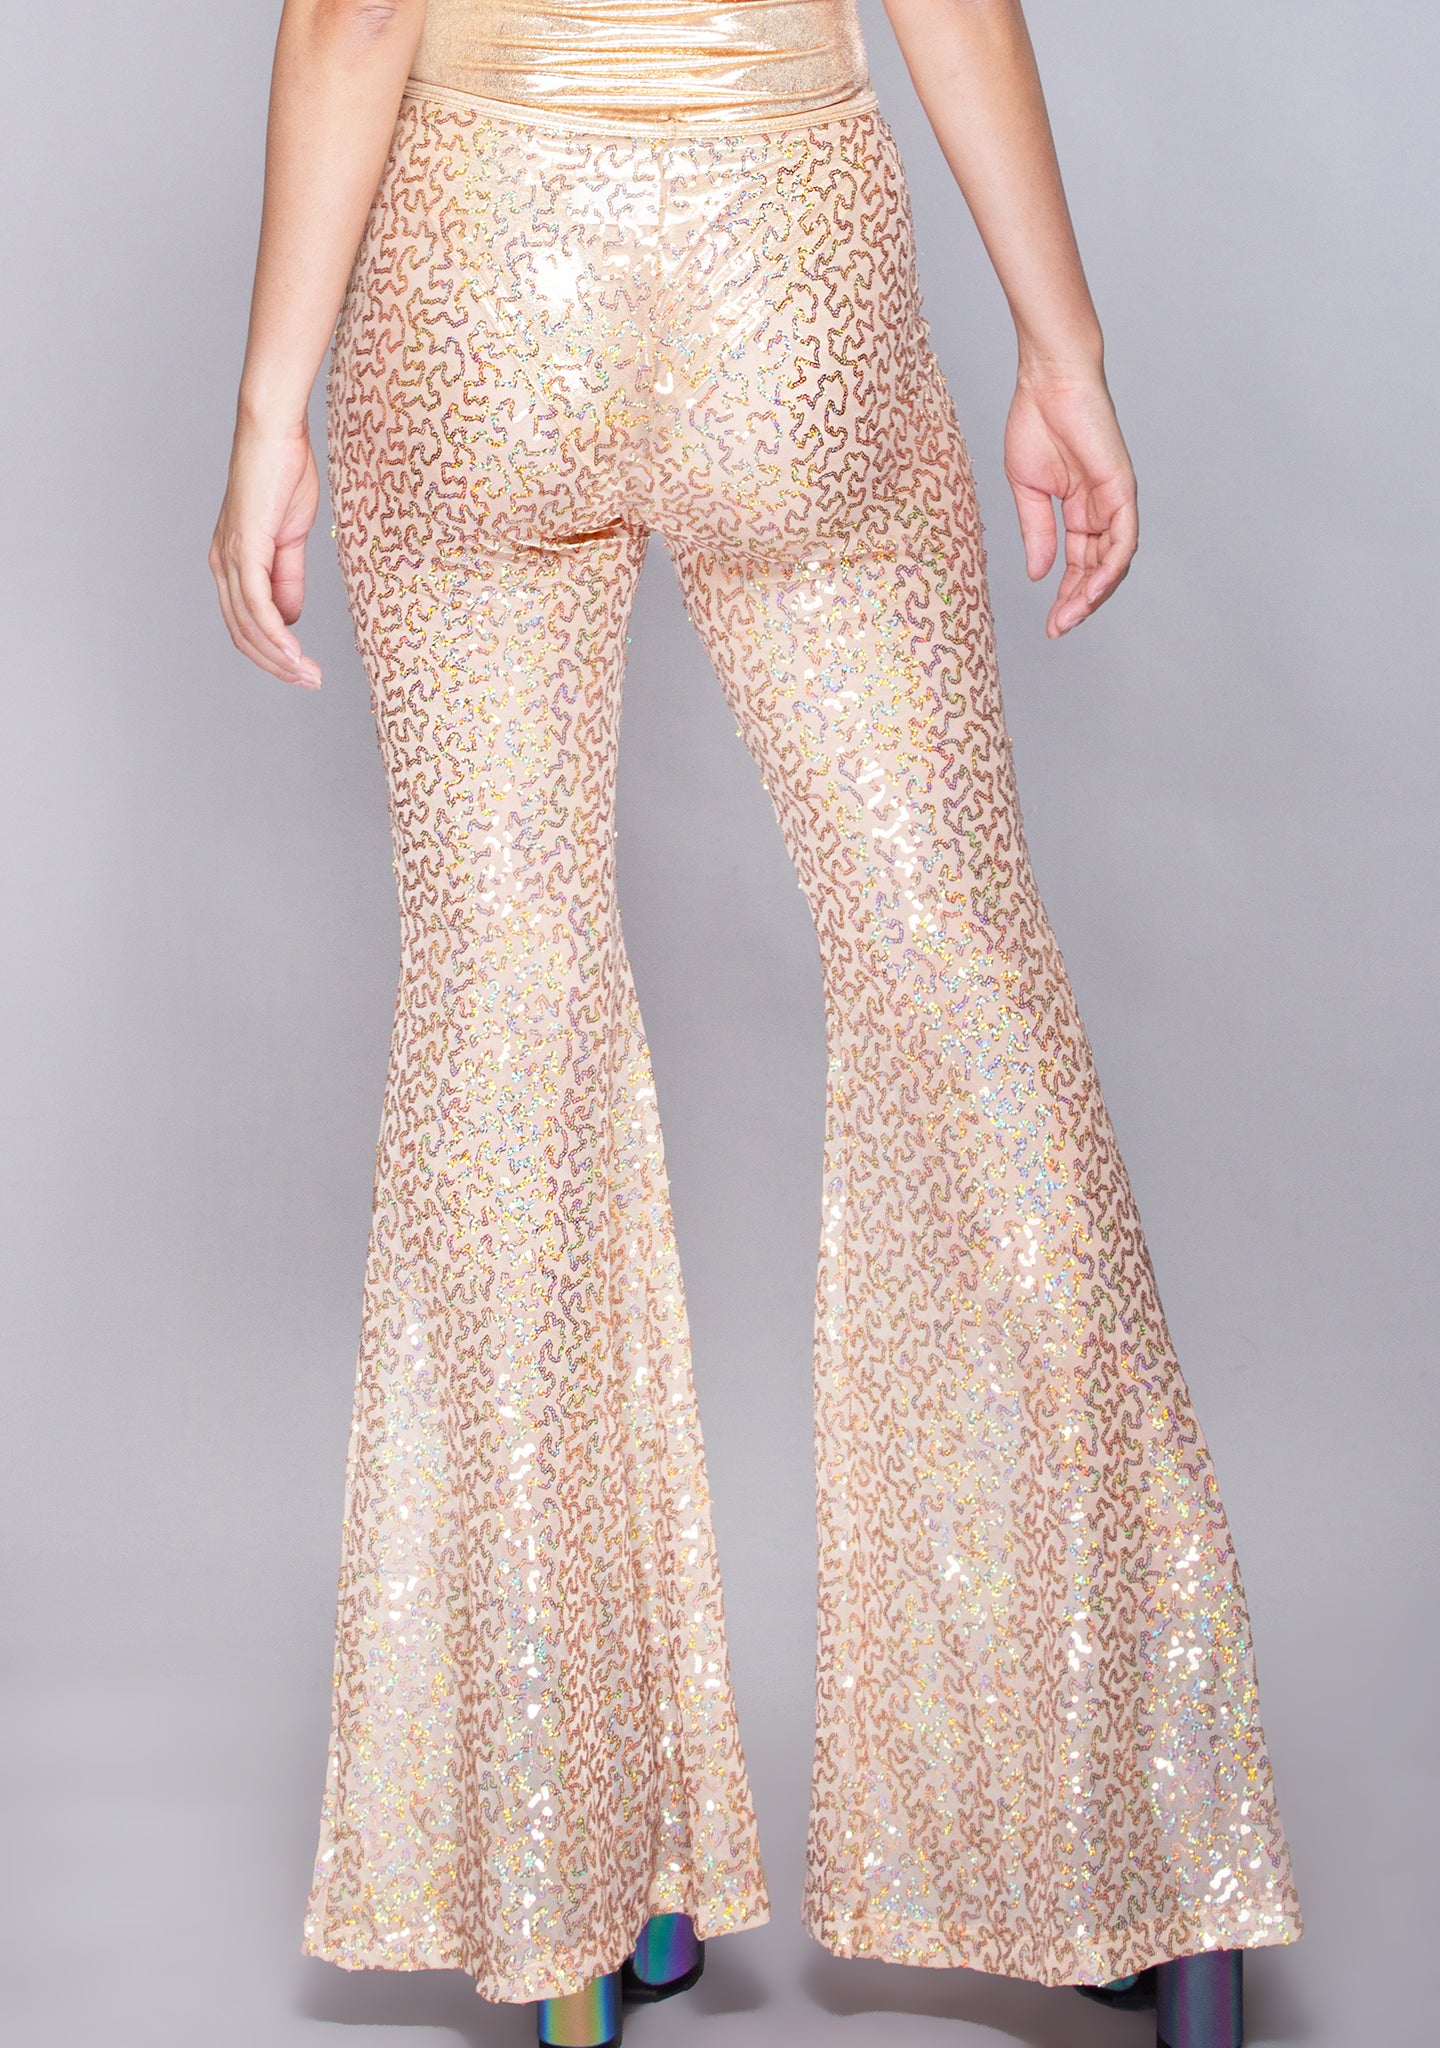 Go For Gold Sequin Bell Bottoms in Rose Gold Shimmer